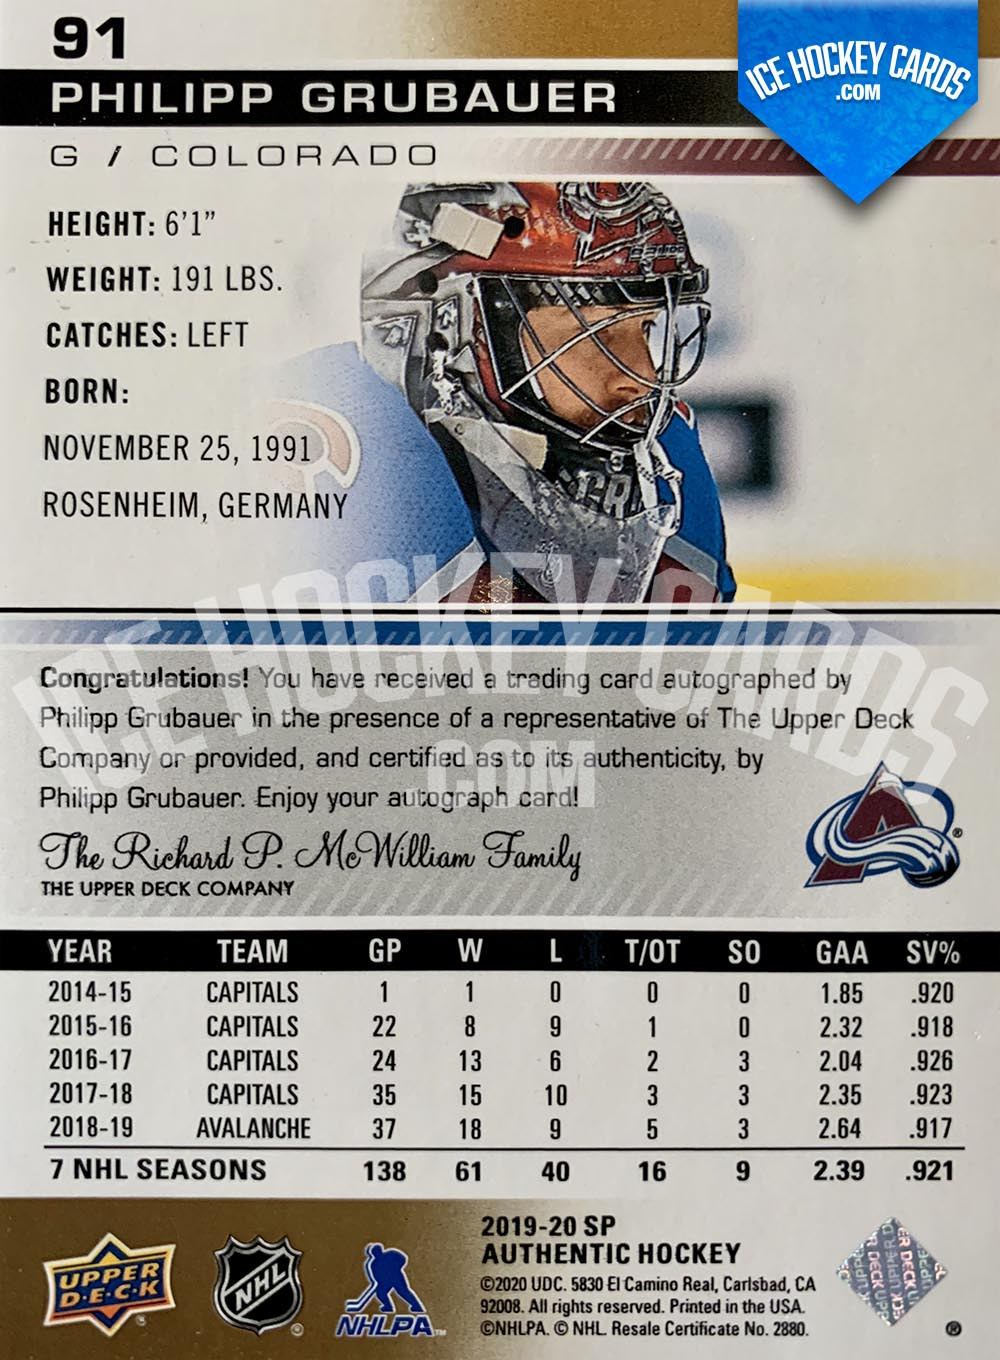 Upper Deck - SP Authentic 2019-20 - Philipp Grubauer Limited Autograph back